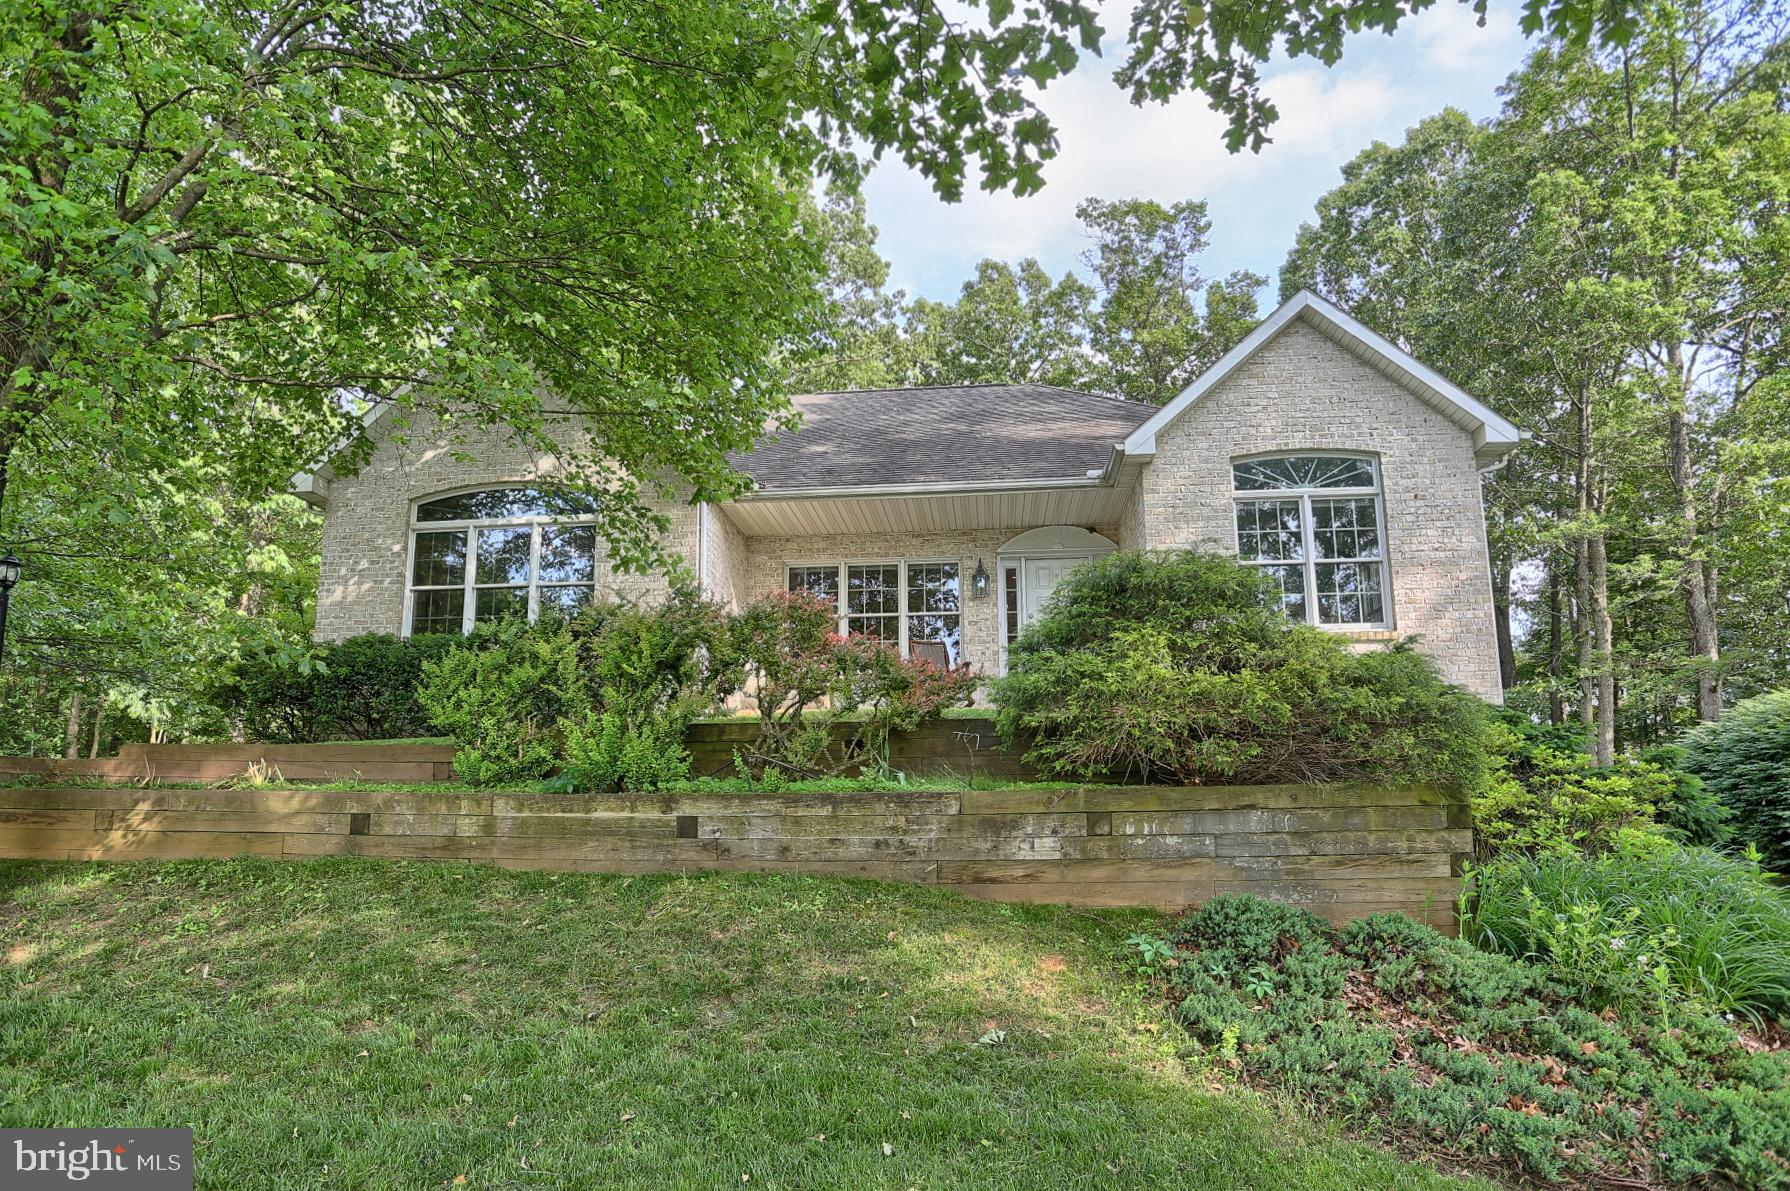 1265 CROWN POINT COURT, NEW FREEDOM, PA 17349